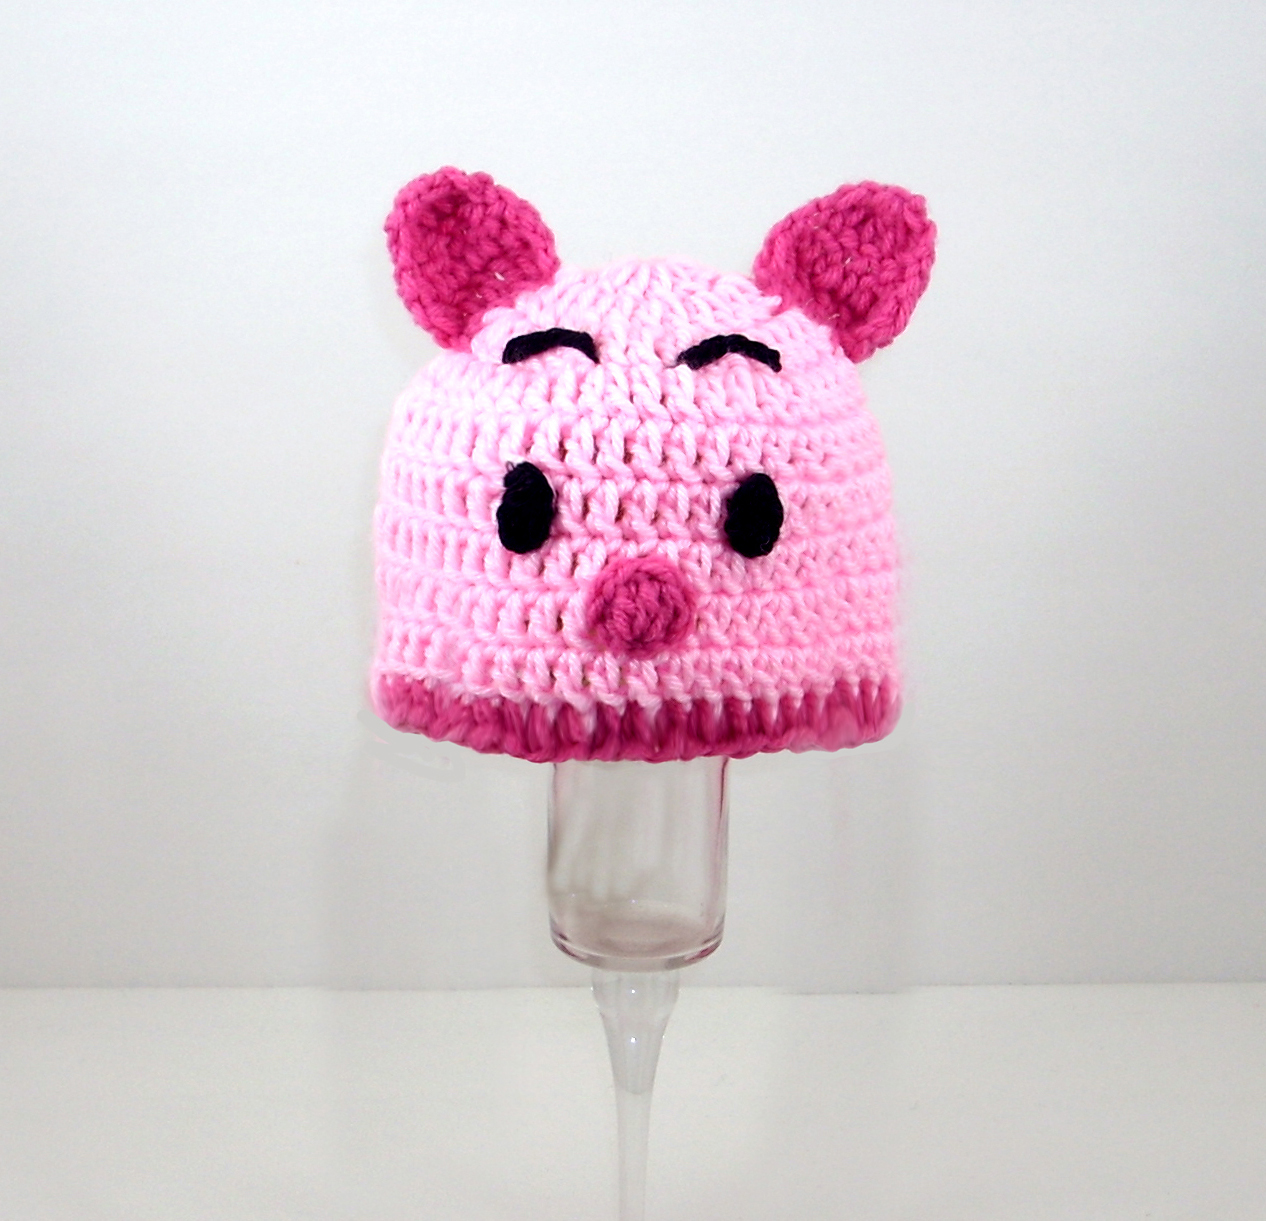 Piglet Hat from Winnie the Pooh